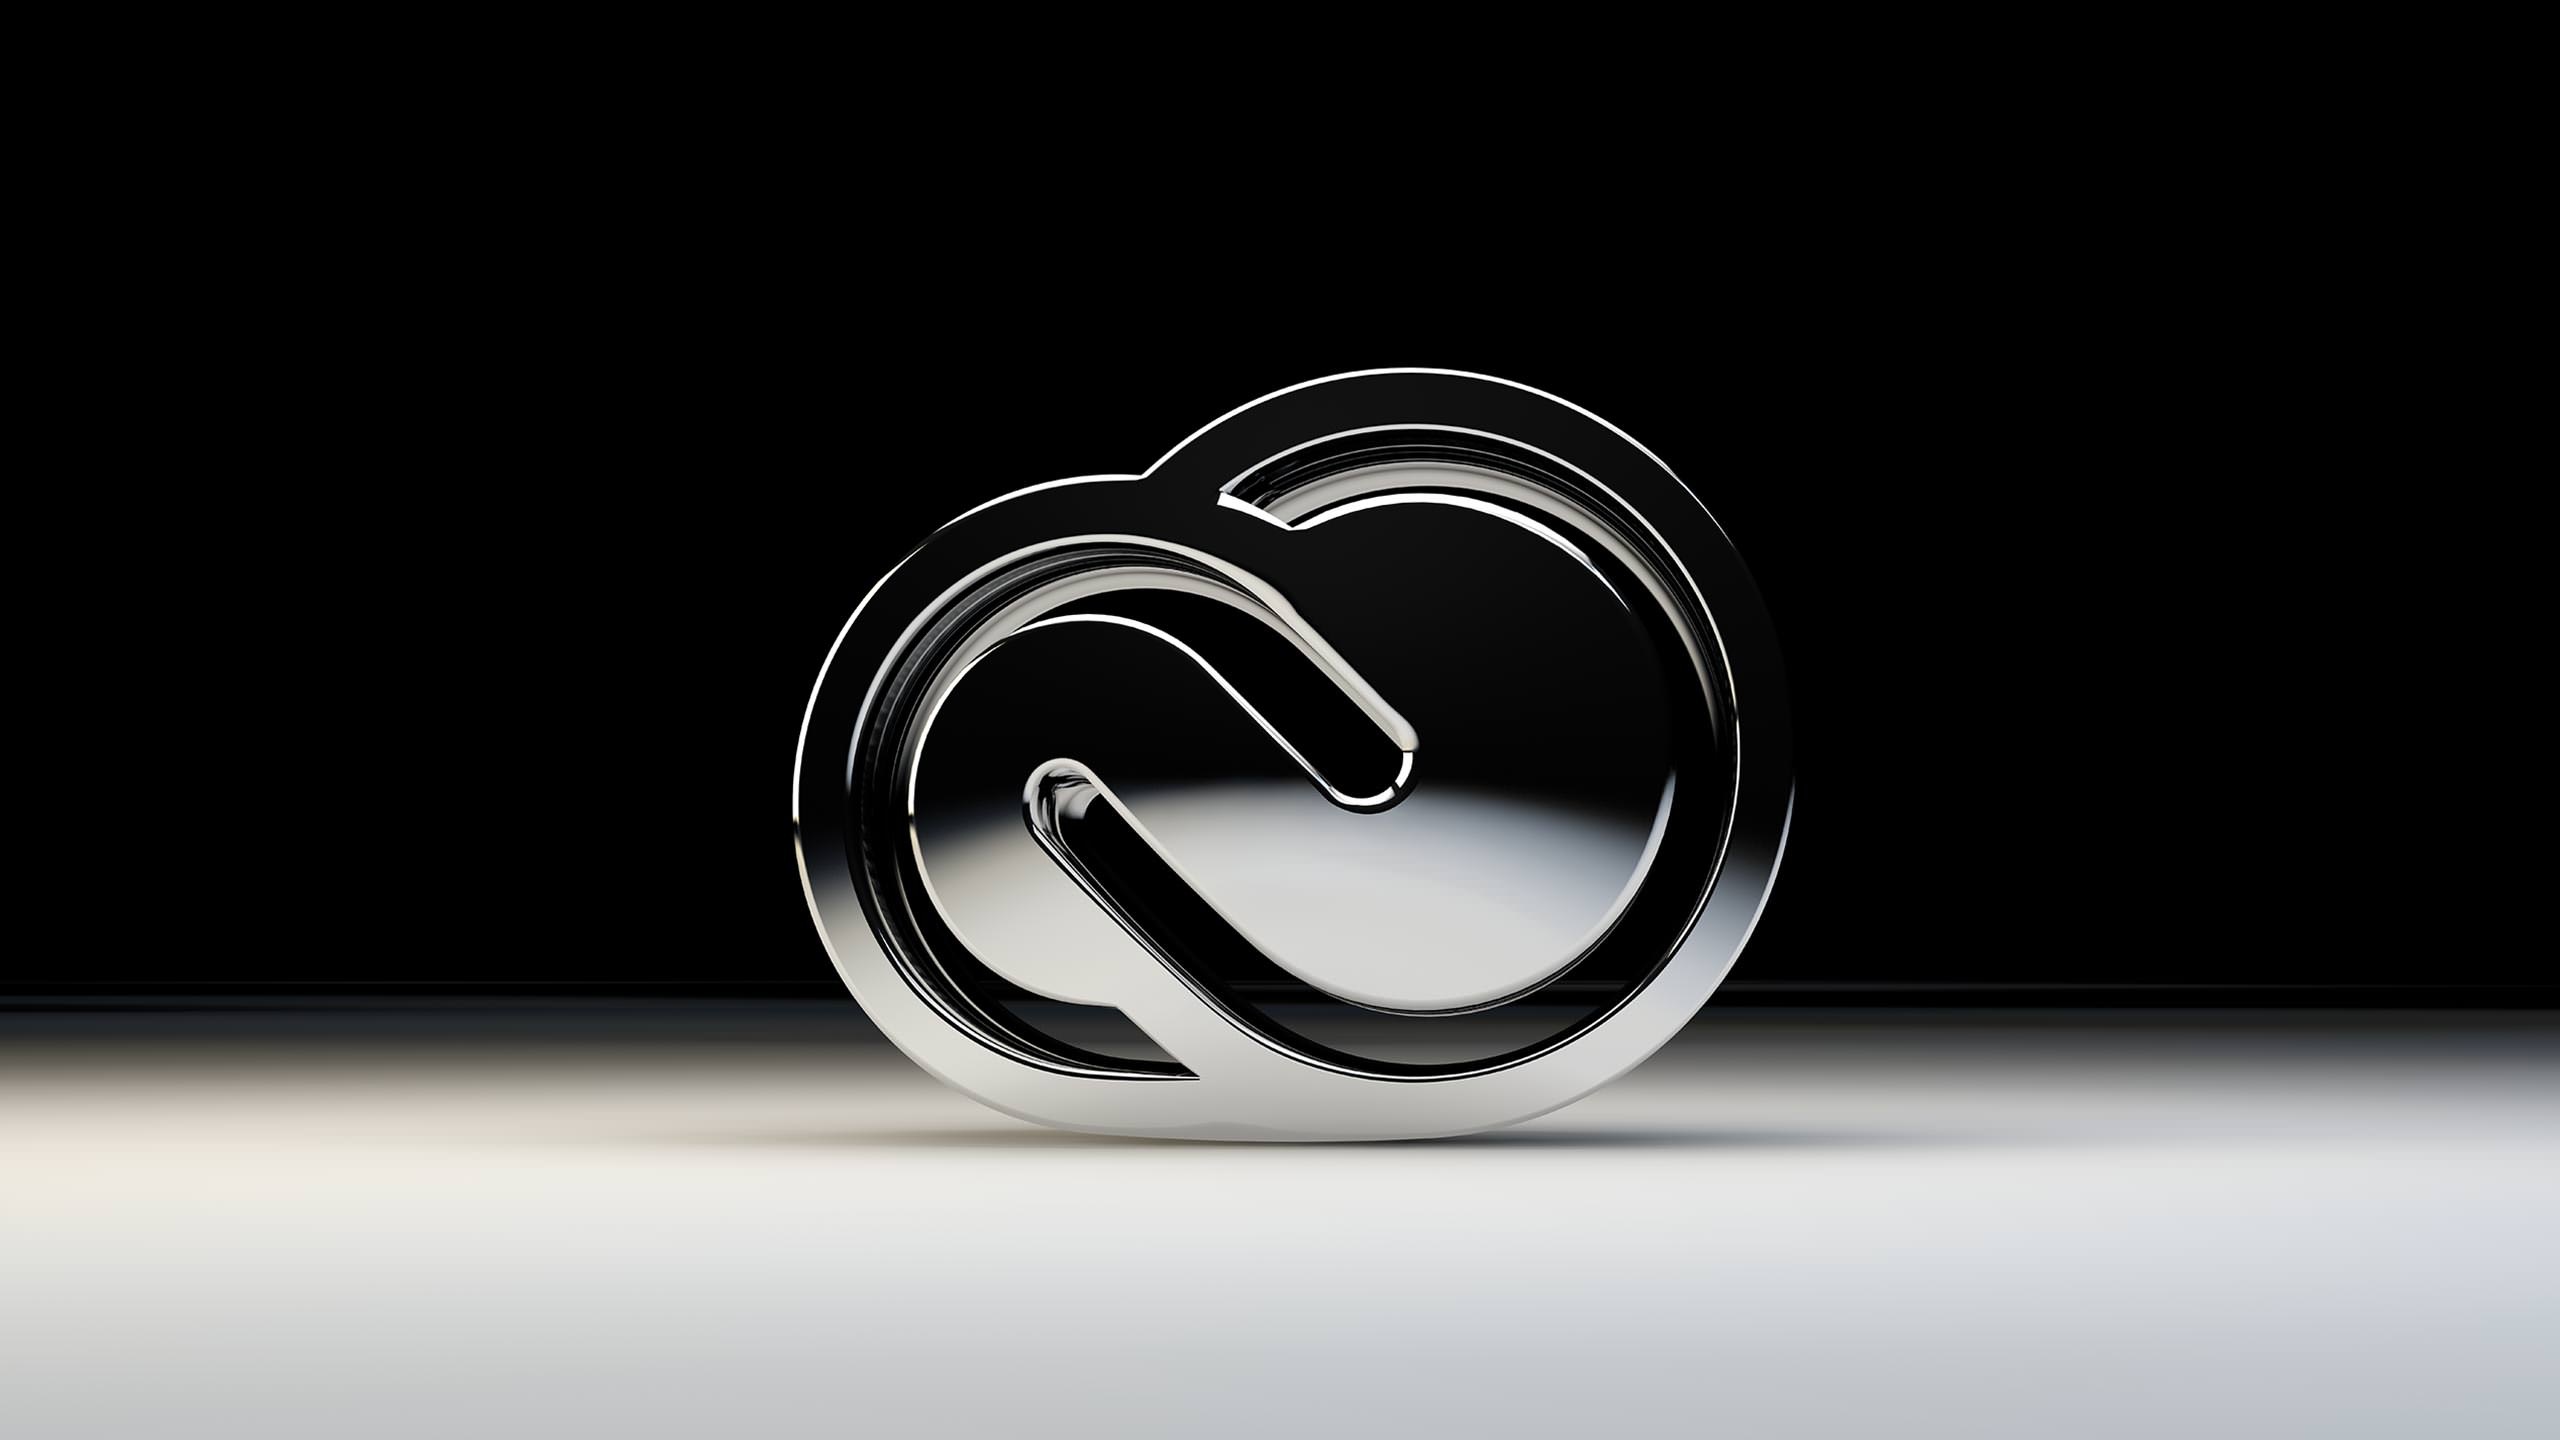 Adobe Creative Cloud Identity 2015